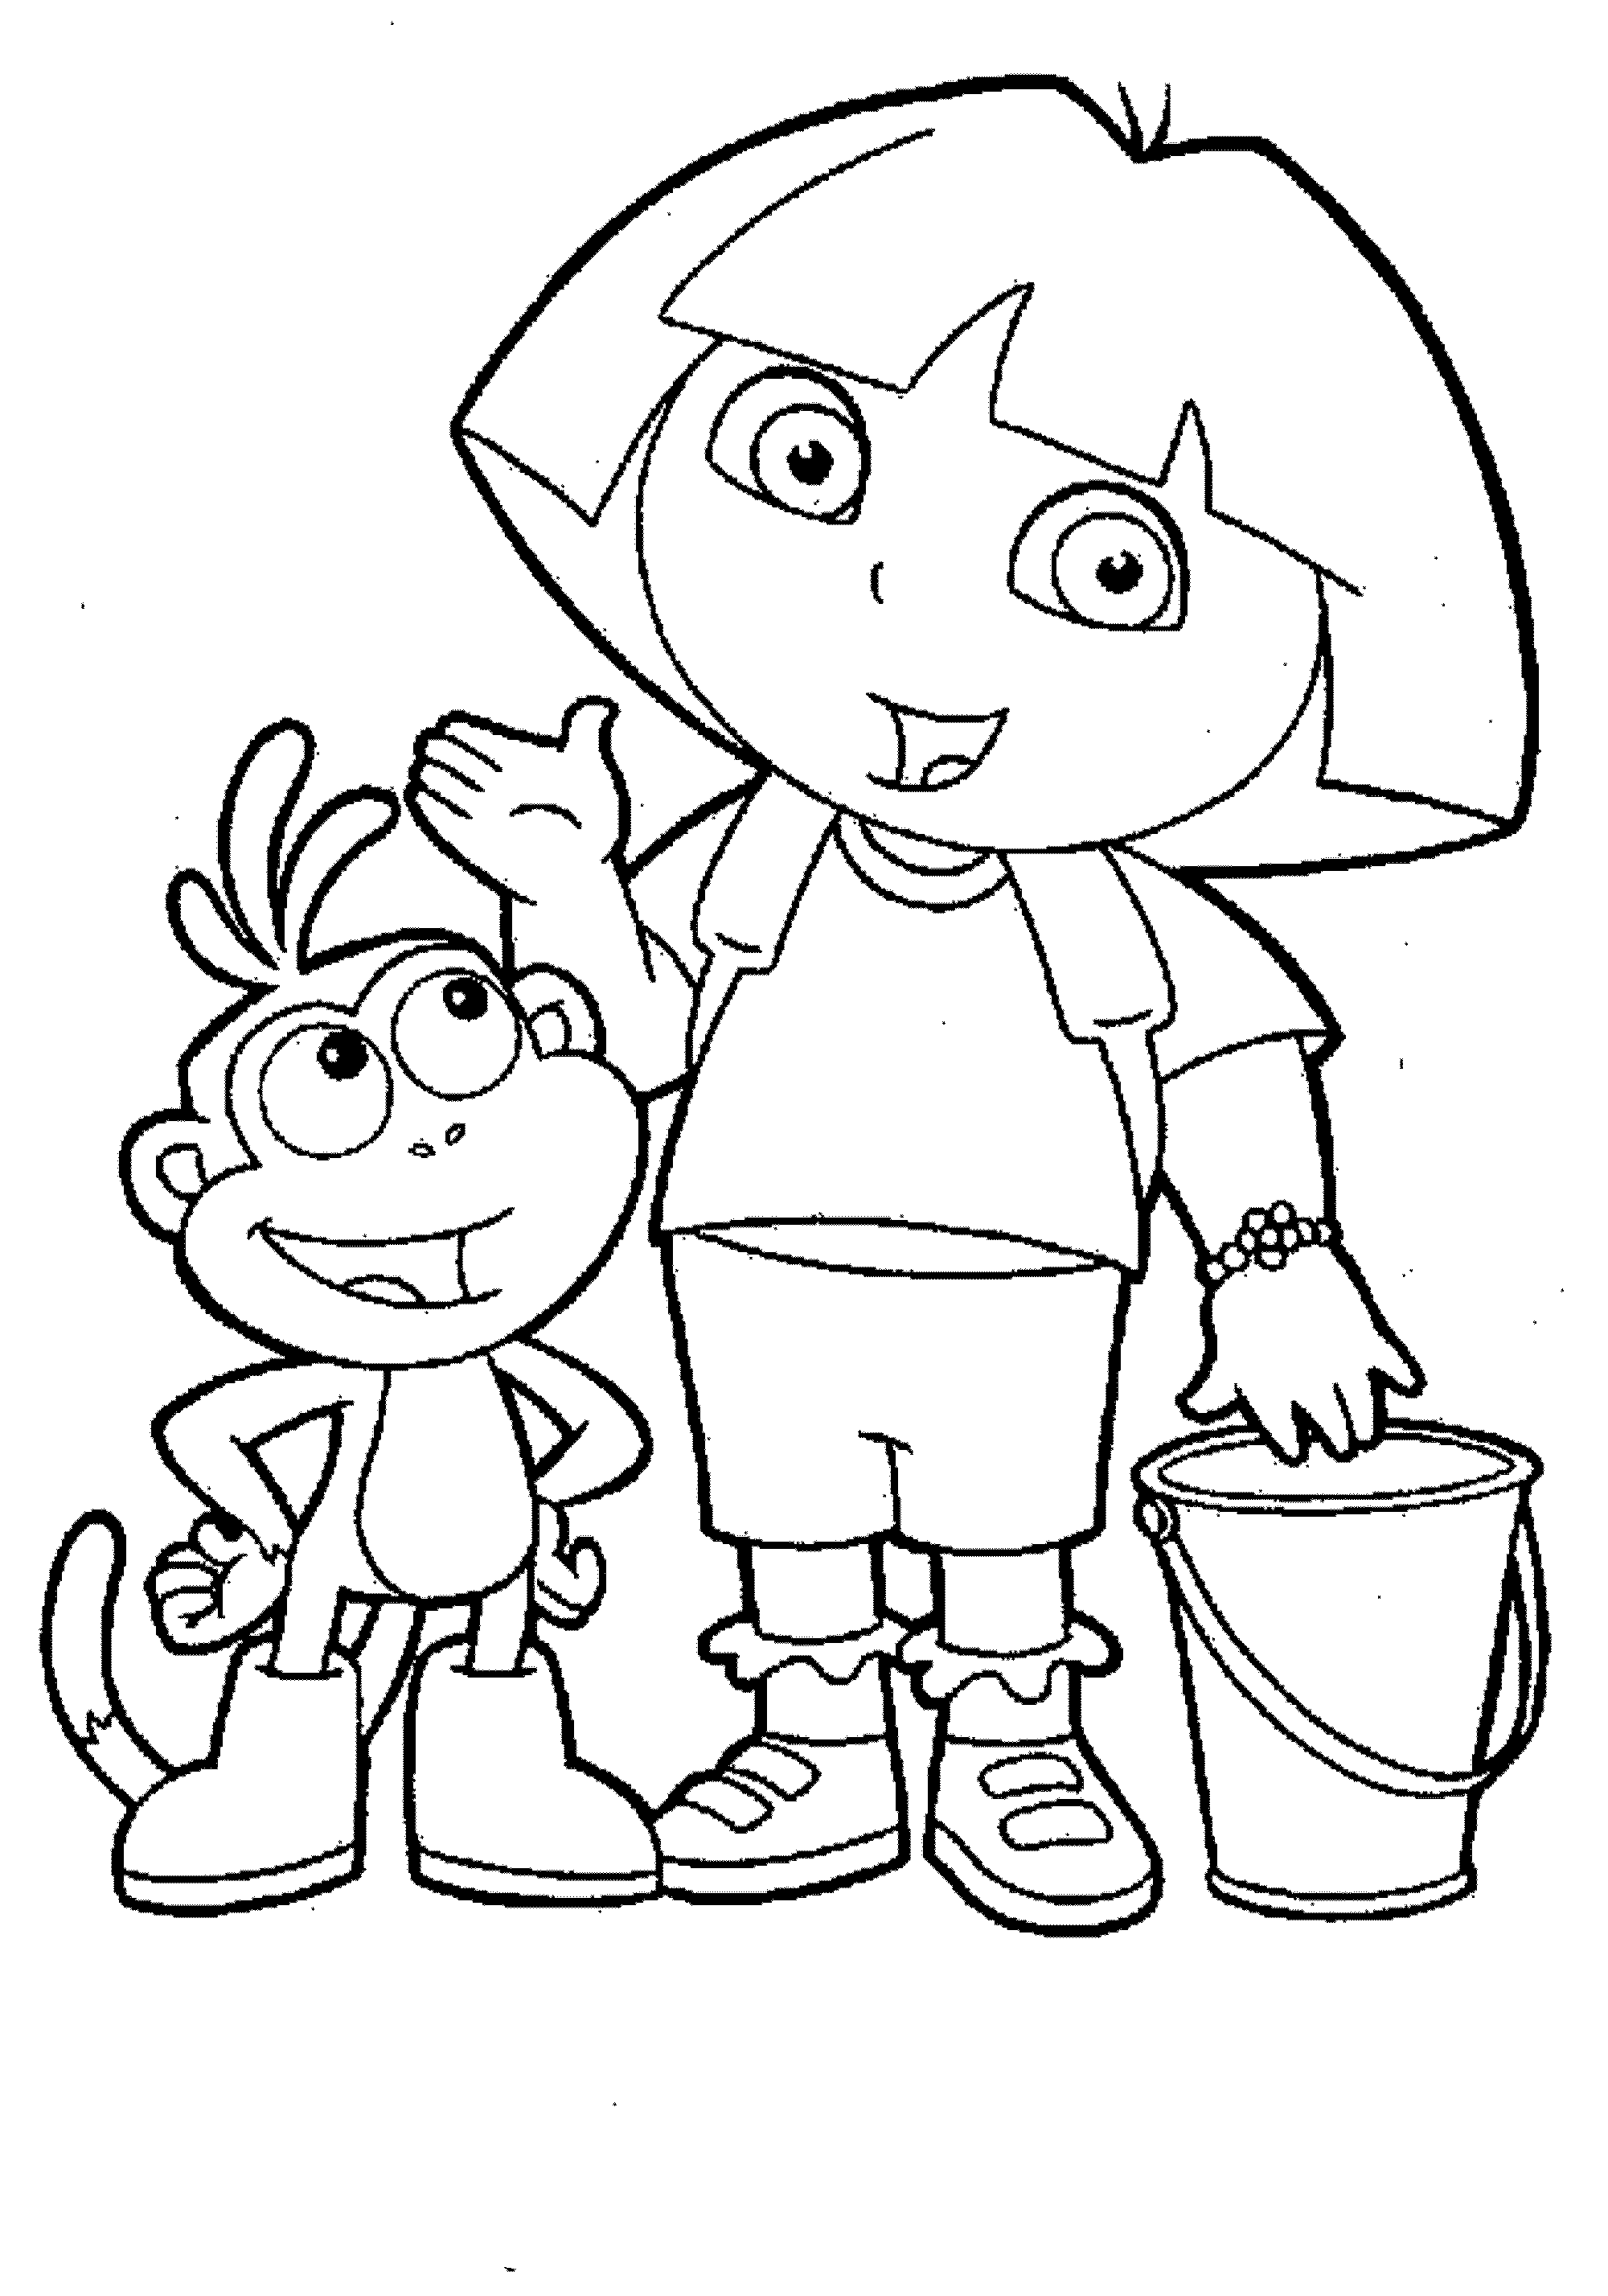 free printable dora coloring pages free printable dora the explorer coloring pages for kids pages printable dora coloring free